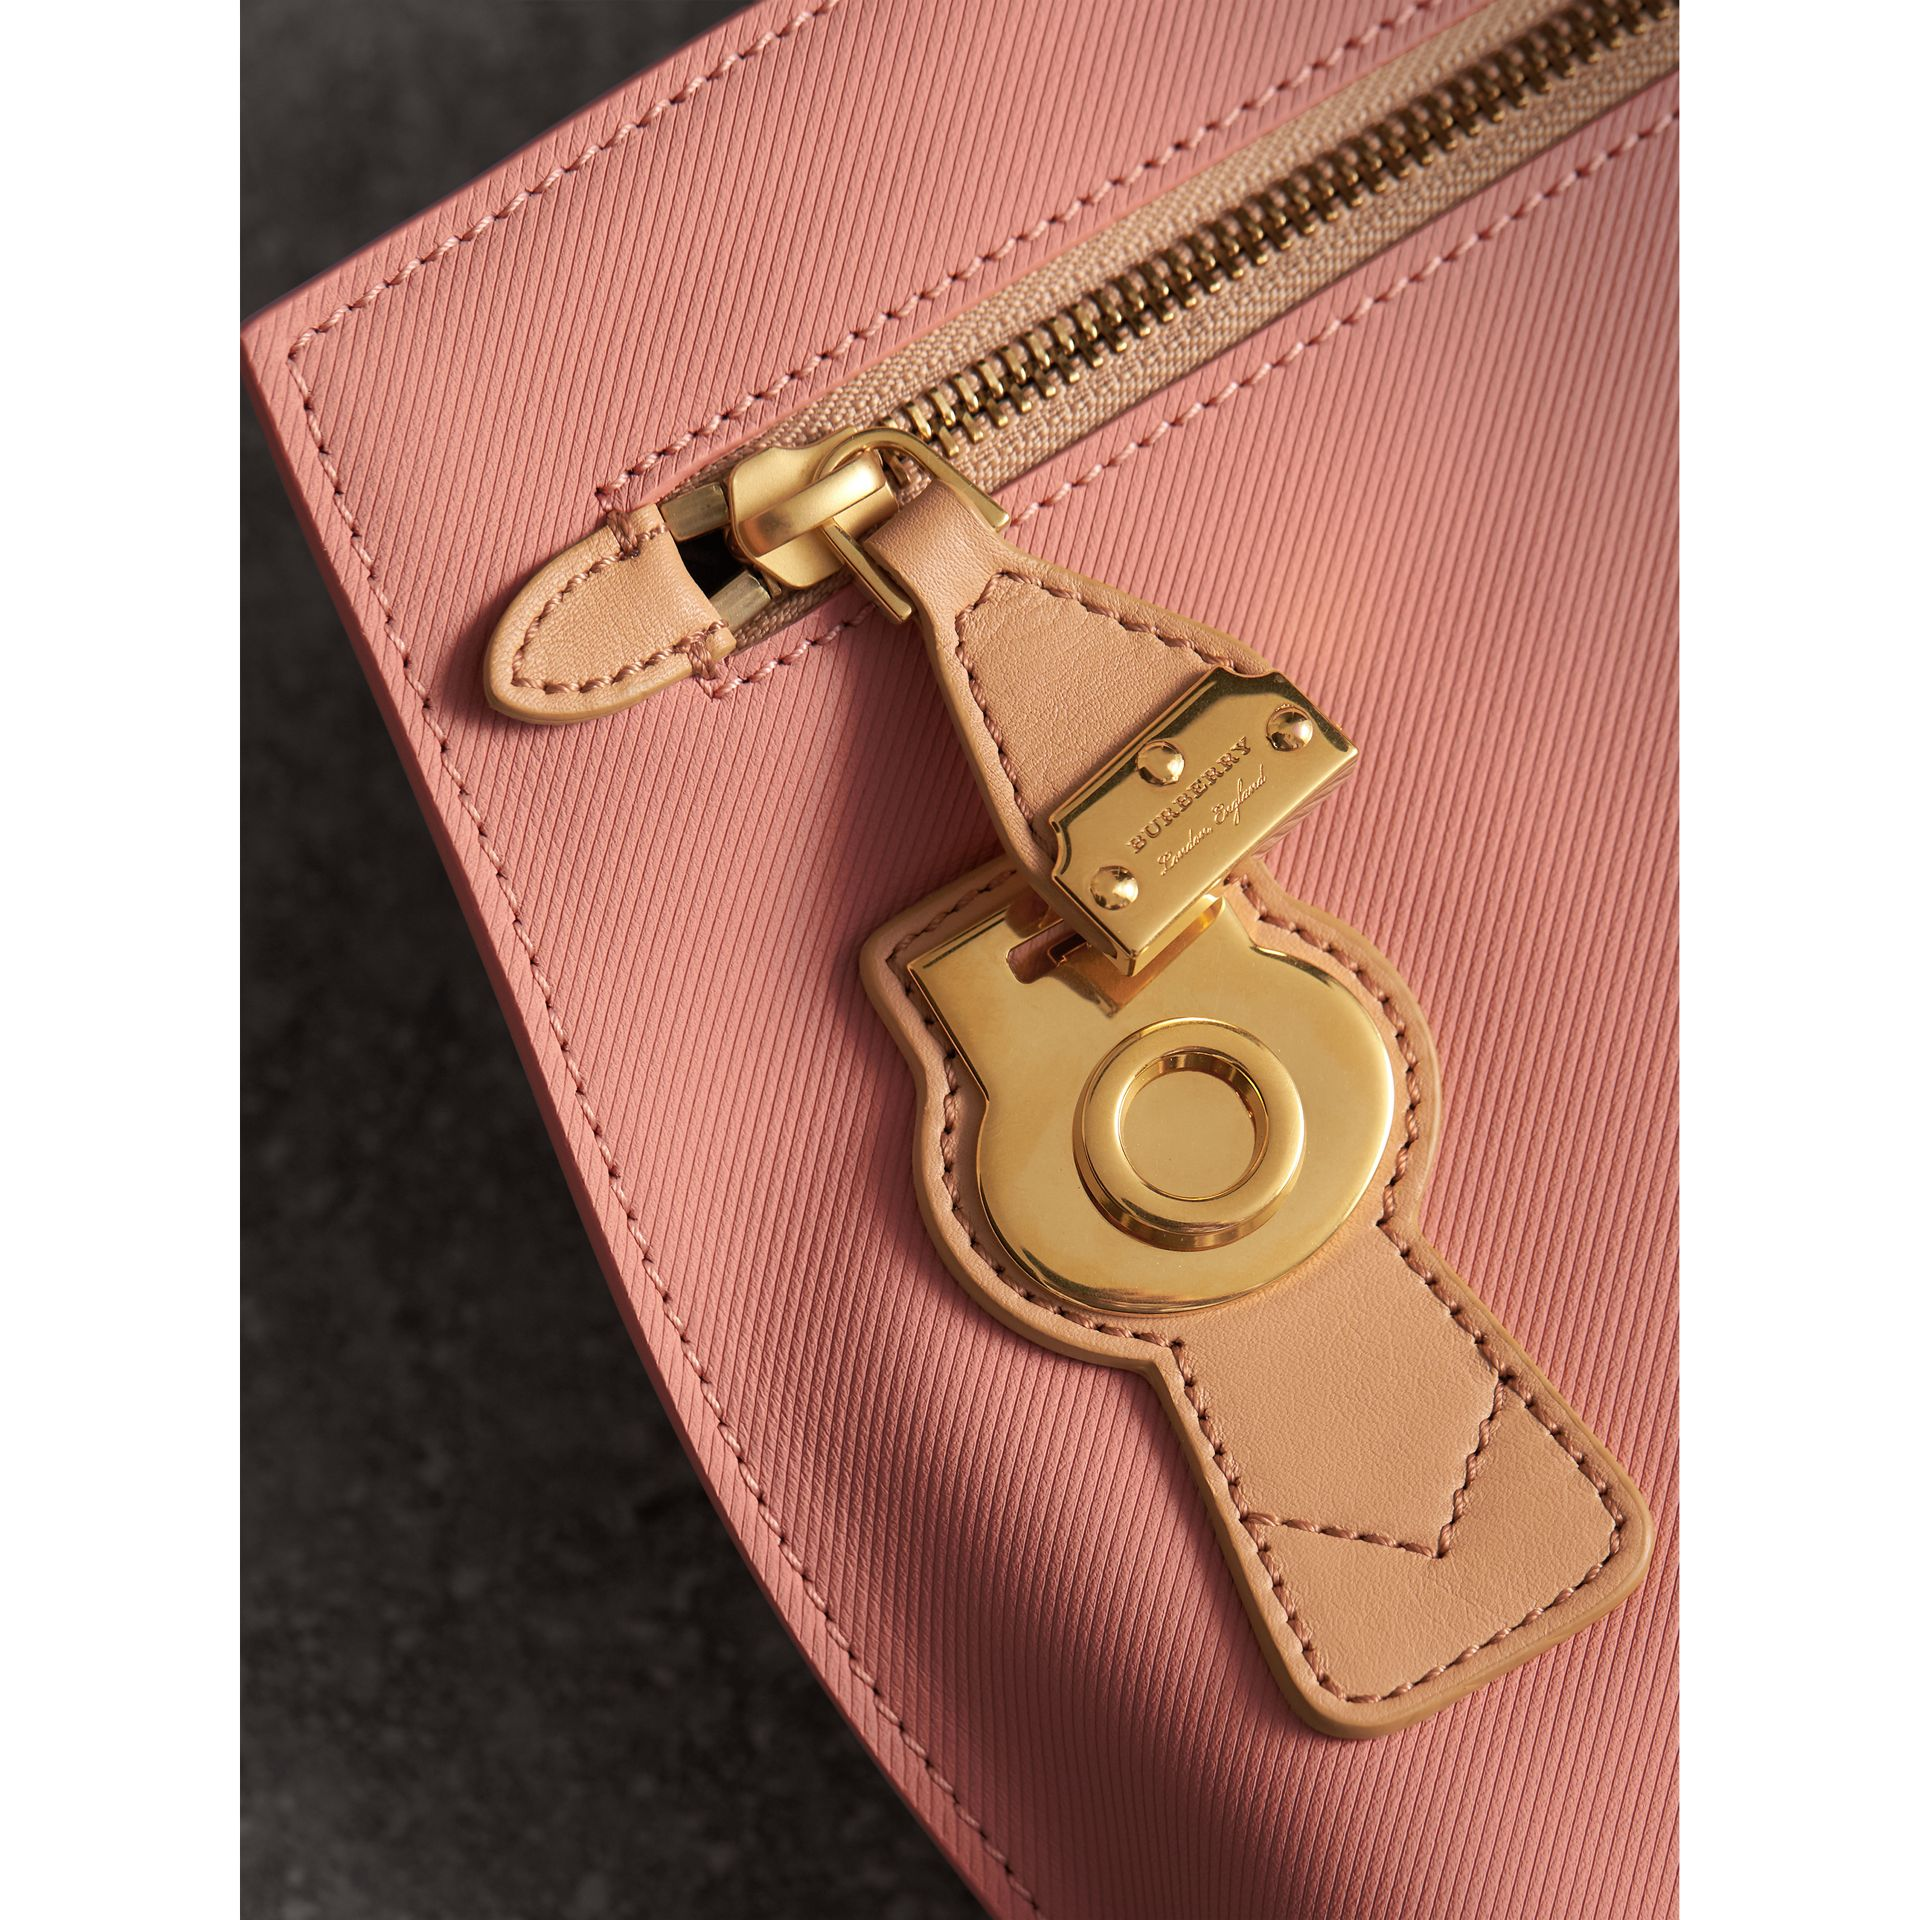 Two-tone Trench Leather Wristlet Pouch in Ash Rose/pale Clementine - Women | Burberry - gallery image 1